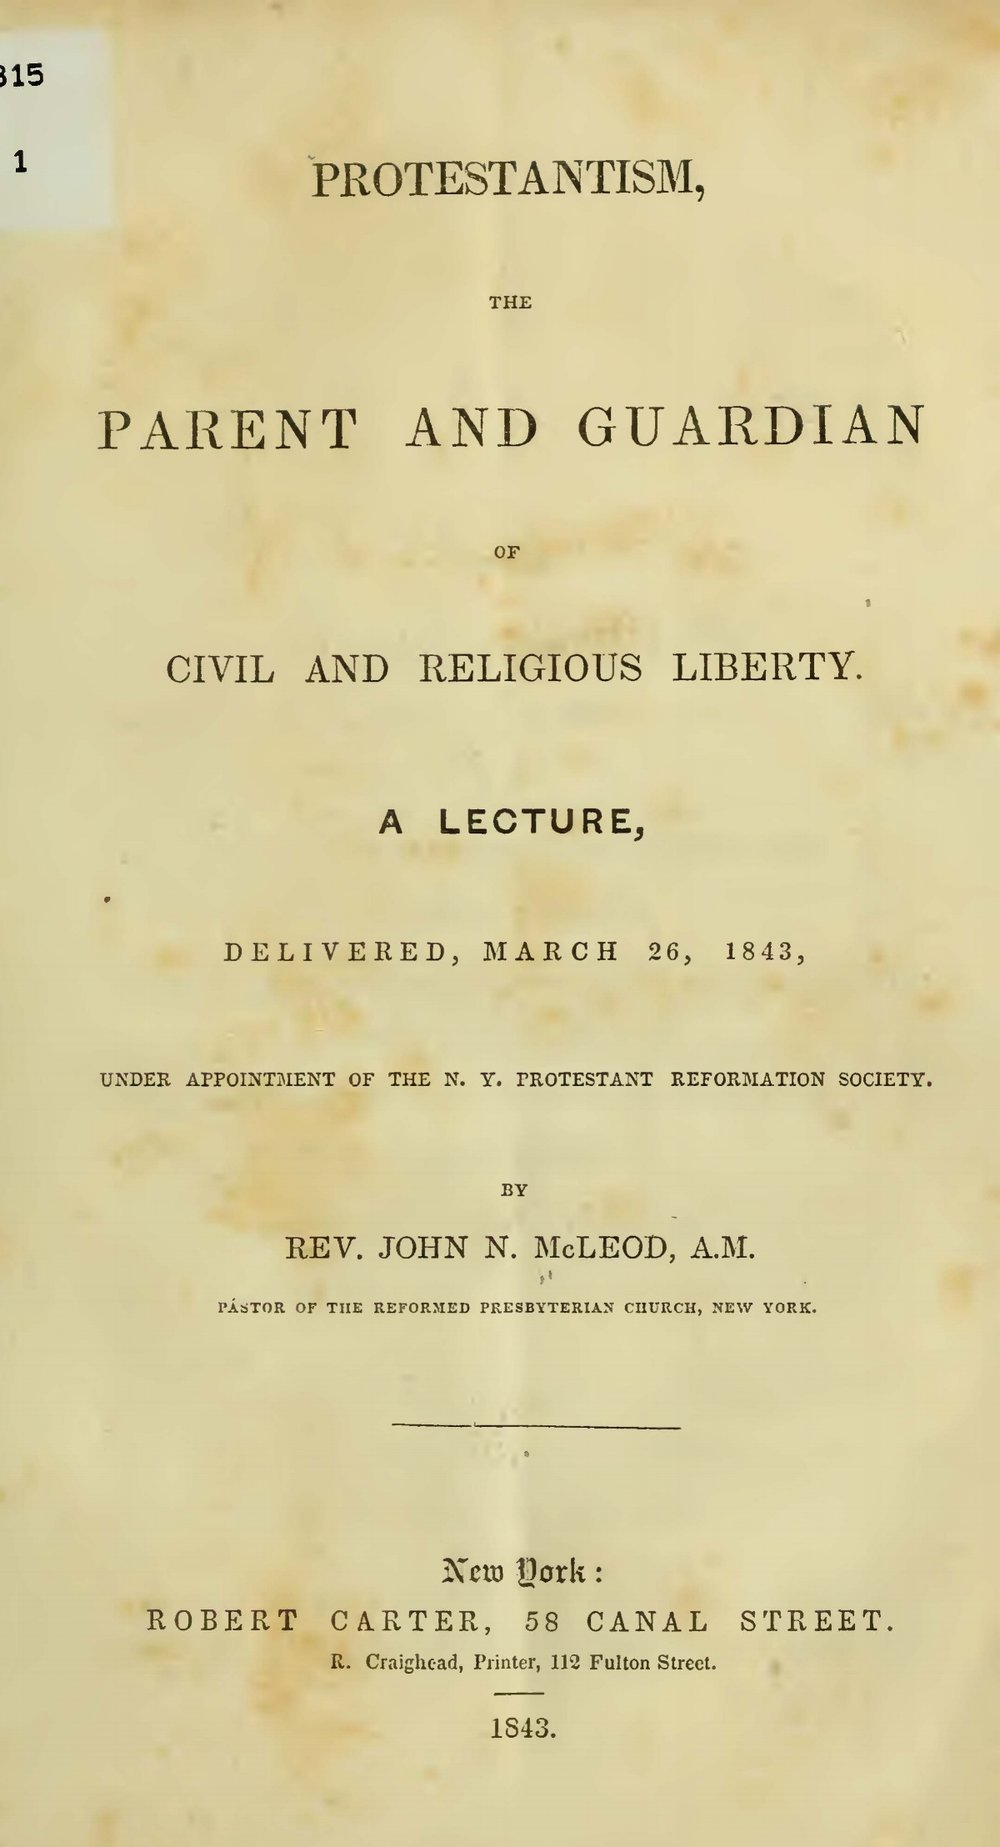 McLeod, John Niel, Protestantism, the Parent and Guardian of Civil and Religious Liberty Title Page.jpg